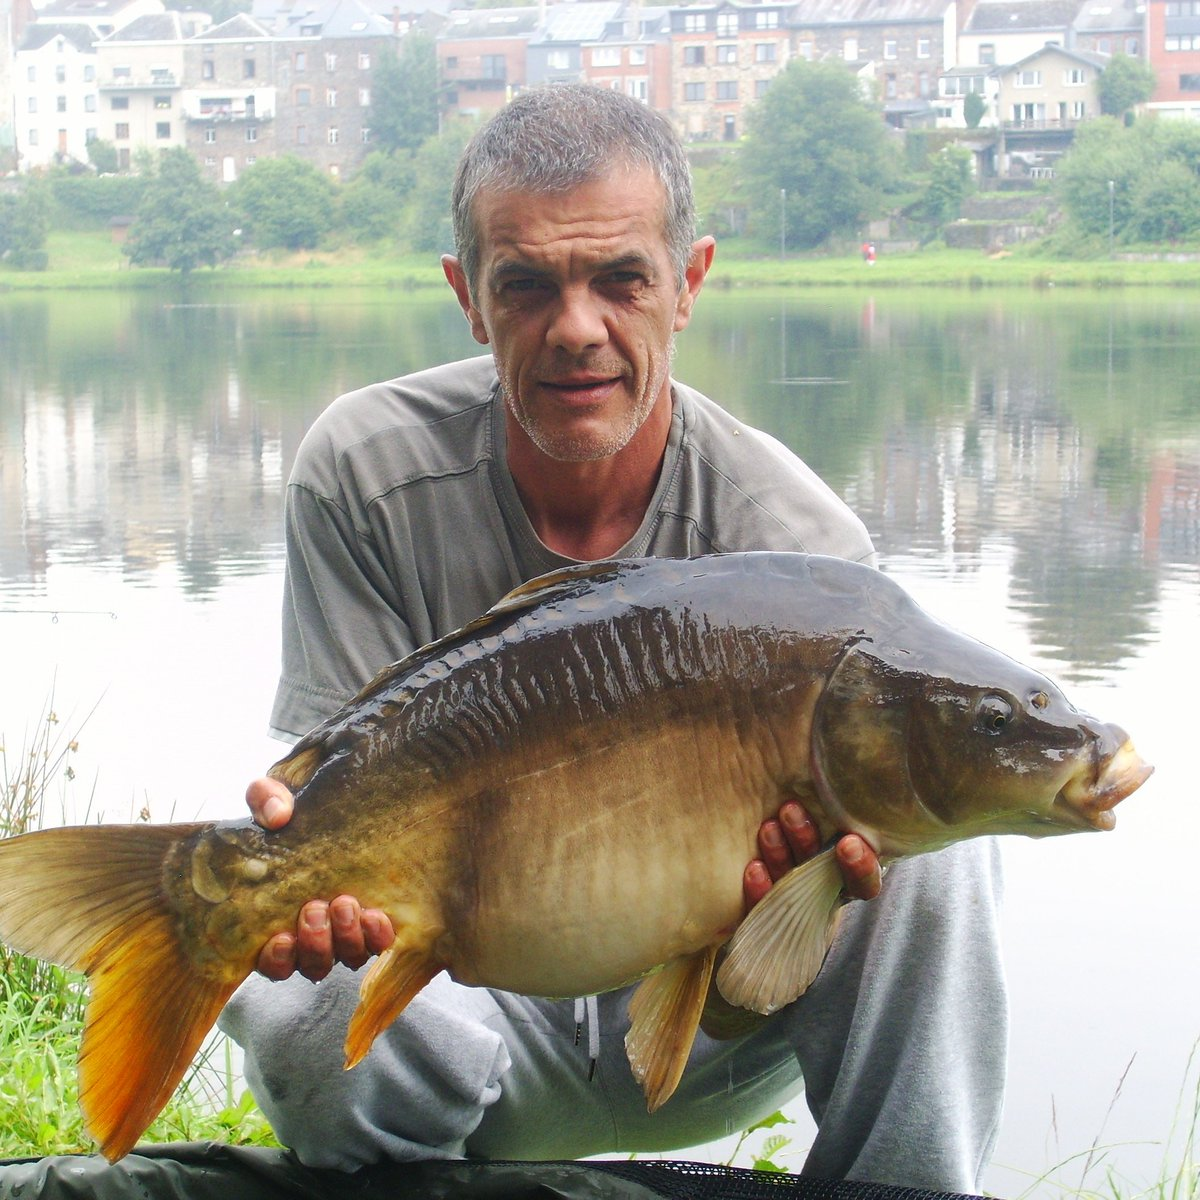 Petite urbaine deviendra grande ...  #carpfishing #carp #photography #carpe<b>Passion</b> https://t.